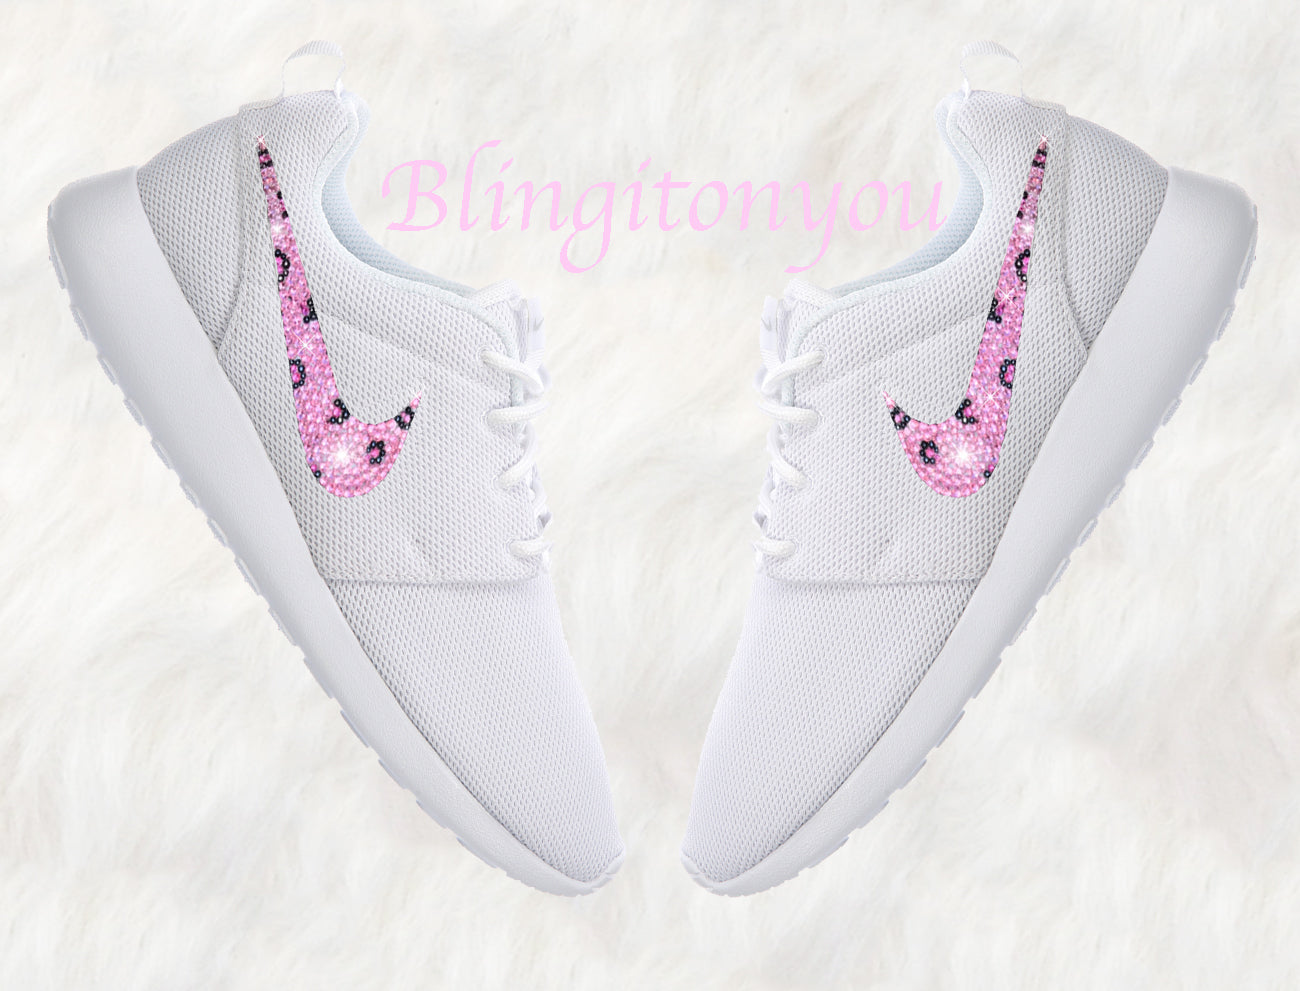 premium selection cb1ca b5914 Swarovski Nike Roshe One Women s Shoes White Blinged Out With Leopard Pink  Swarovski - Swarovski Nike Shoes - Nike Bling Shoes